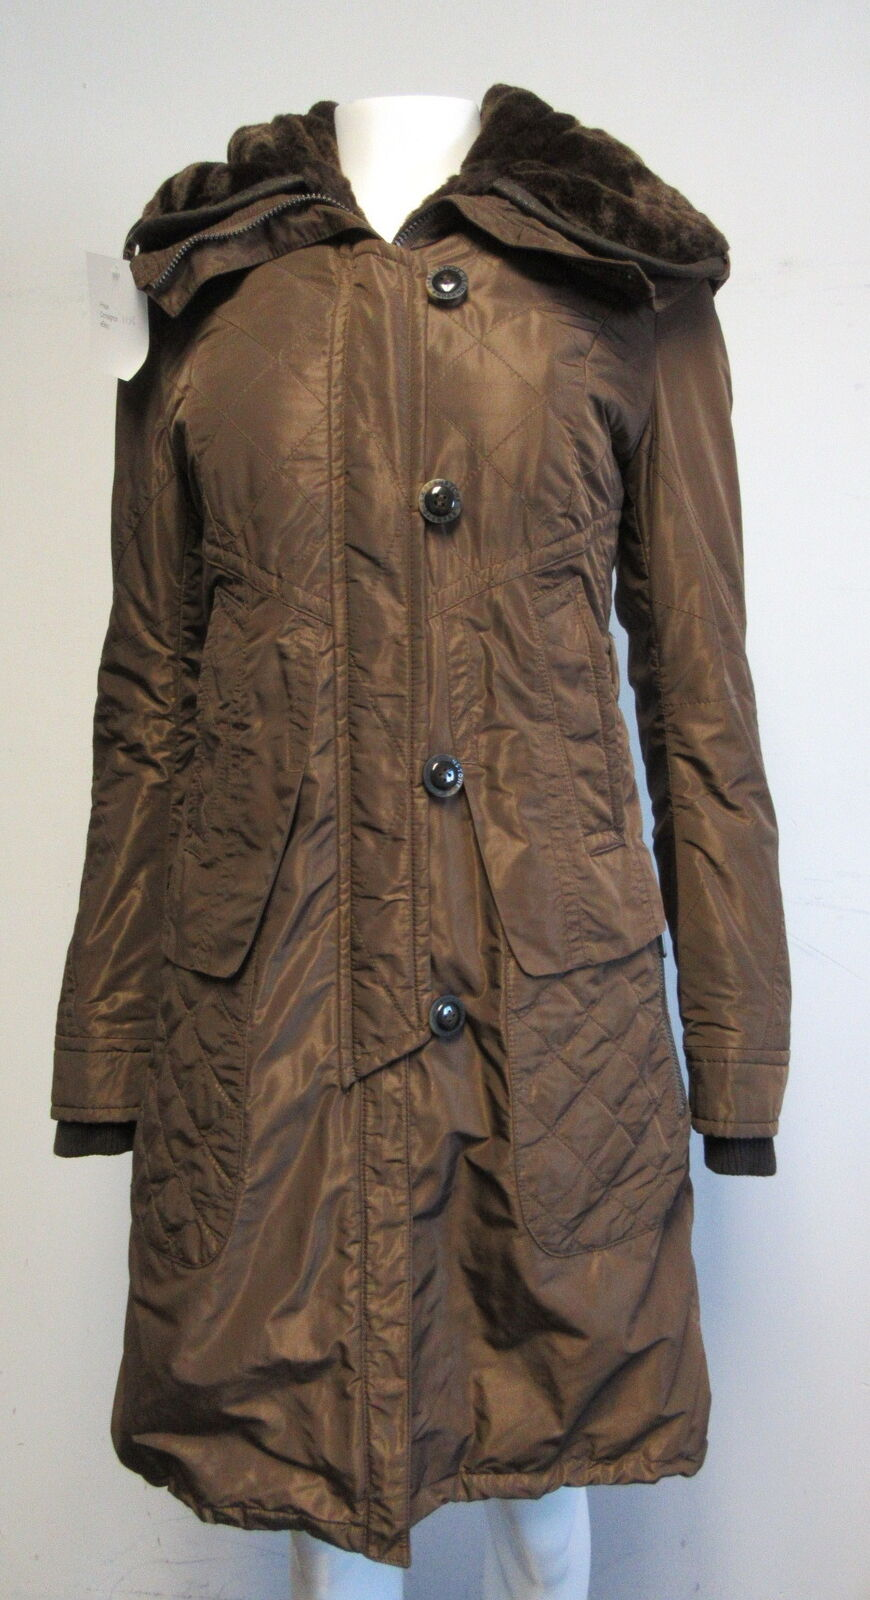 GREENSTONE brown insulated coat w  faux fur lined hood sz 36  4